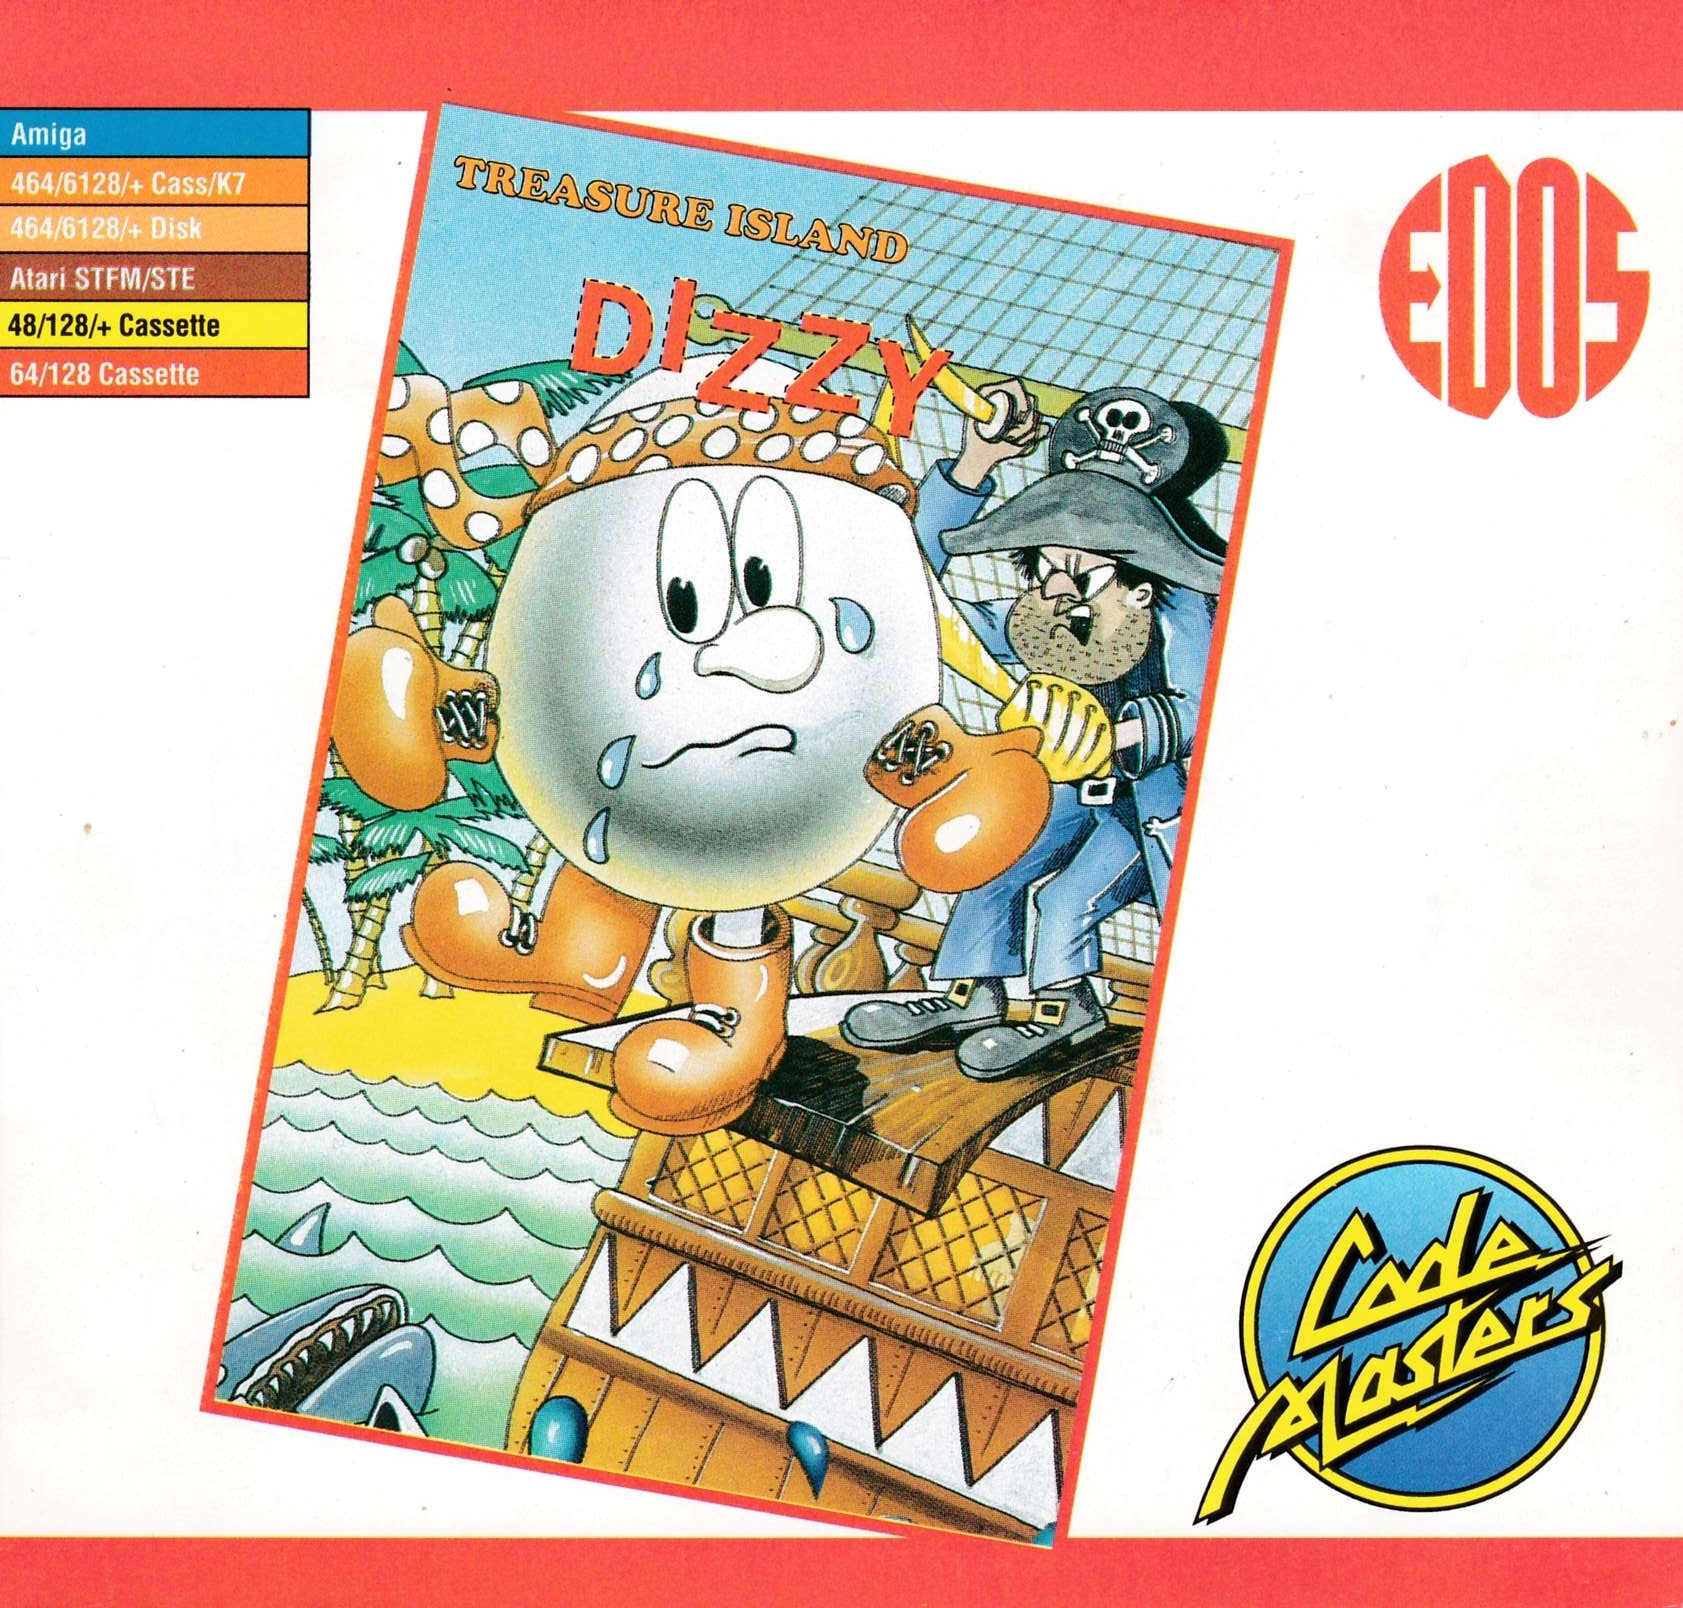 screenshot of the Amstrad CPC game Dizzy II - Treasure Island Dizzy by GameBase CPC